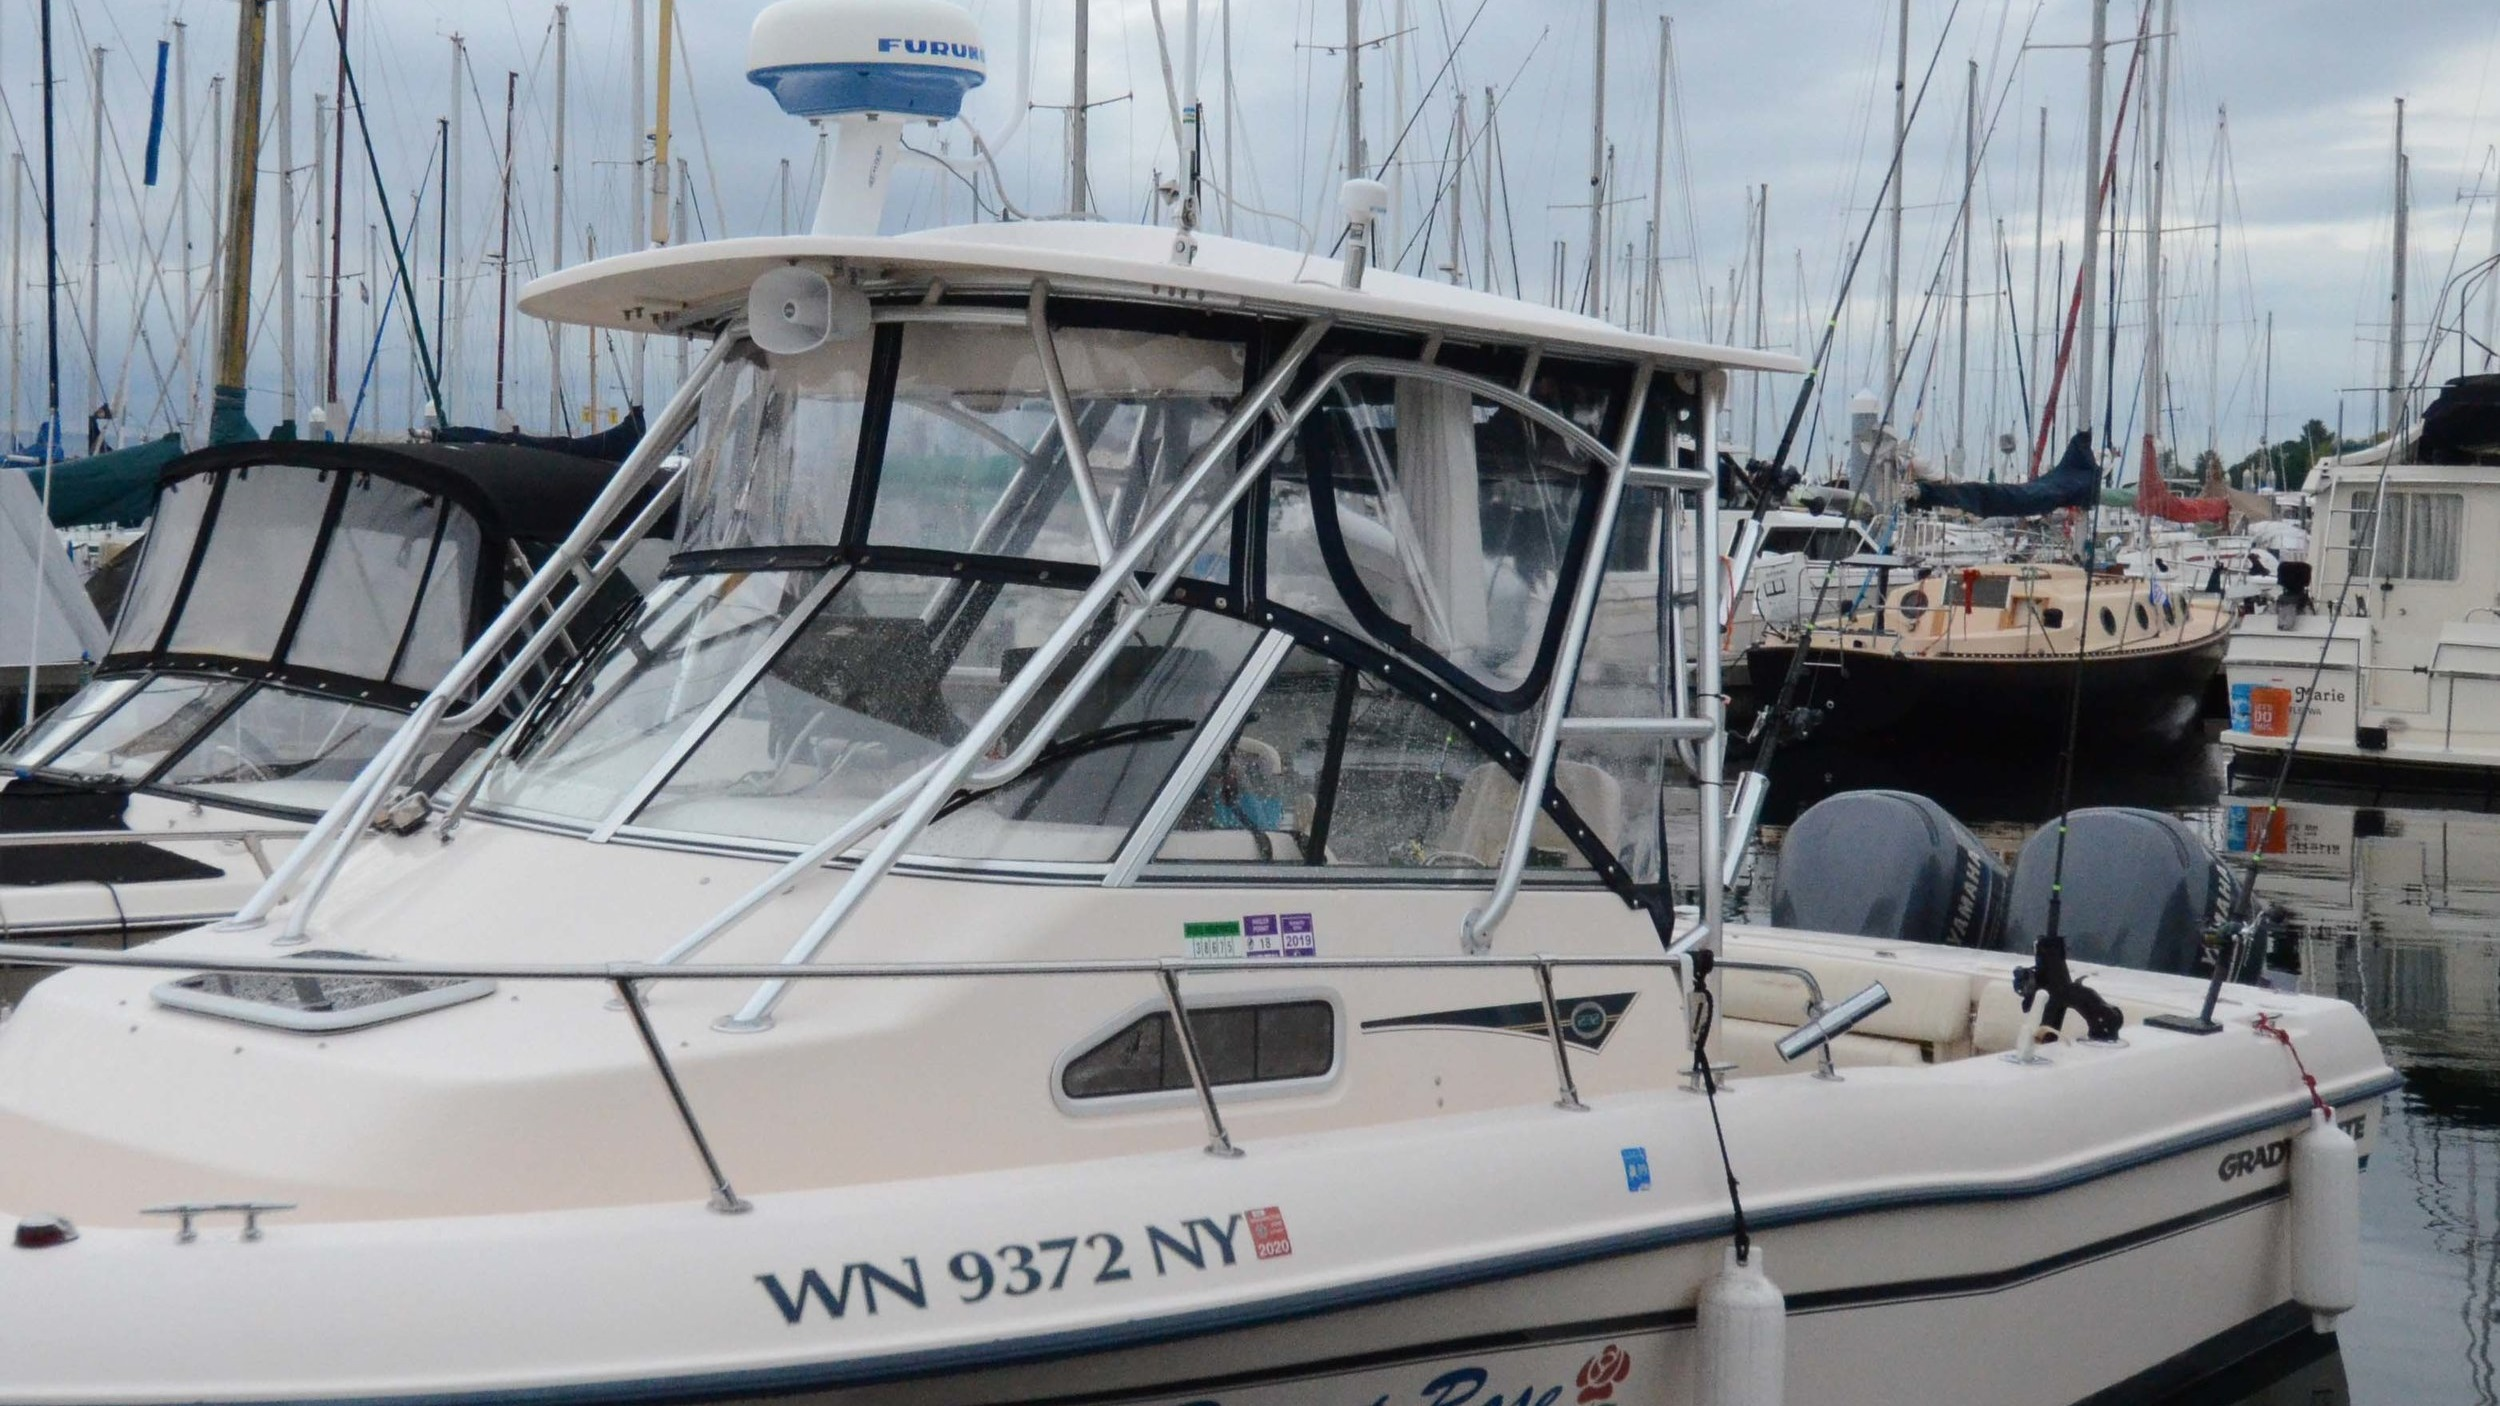 Desert Rose   is a premium Grady White Gulf Stream 232 with a wide beam providing great stability. The twin 200hp Yamaha 4 stroke engines are safe and powerful.